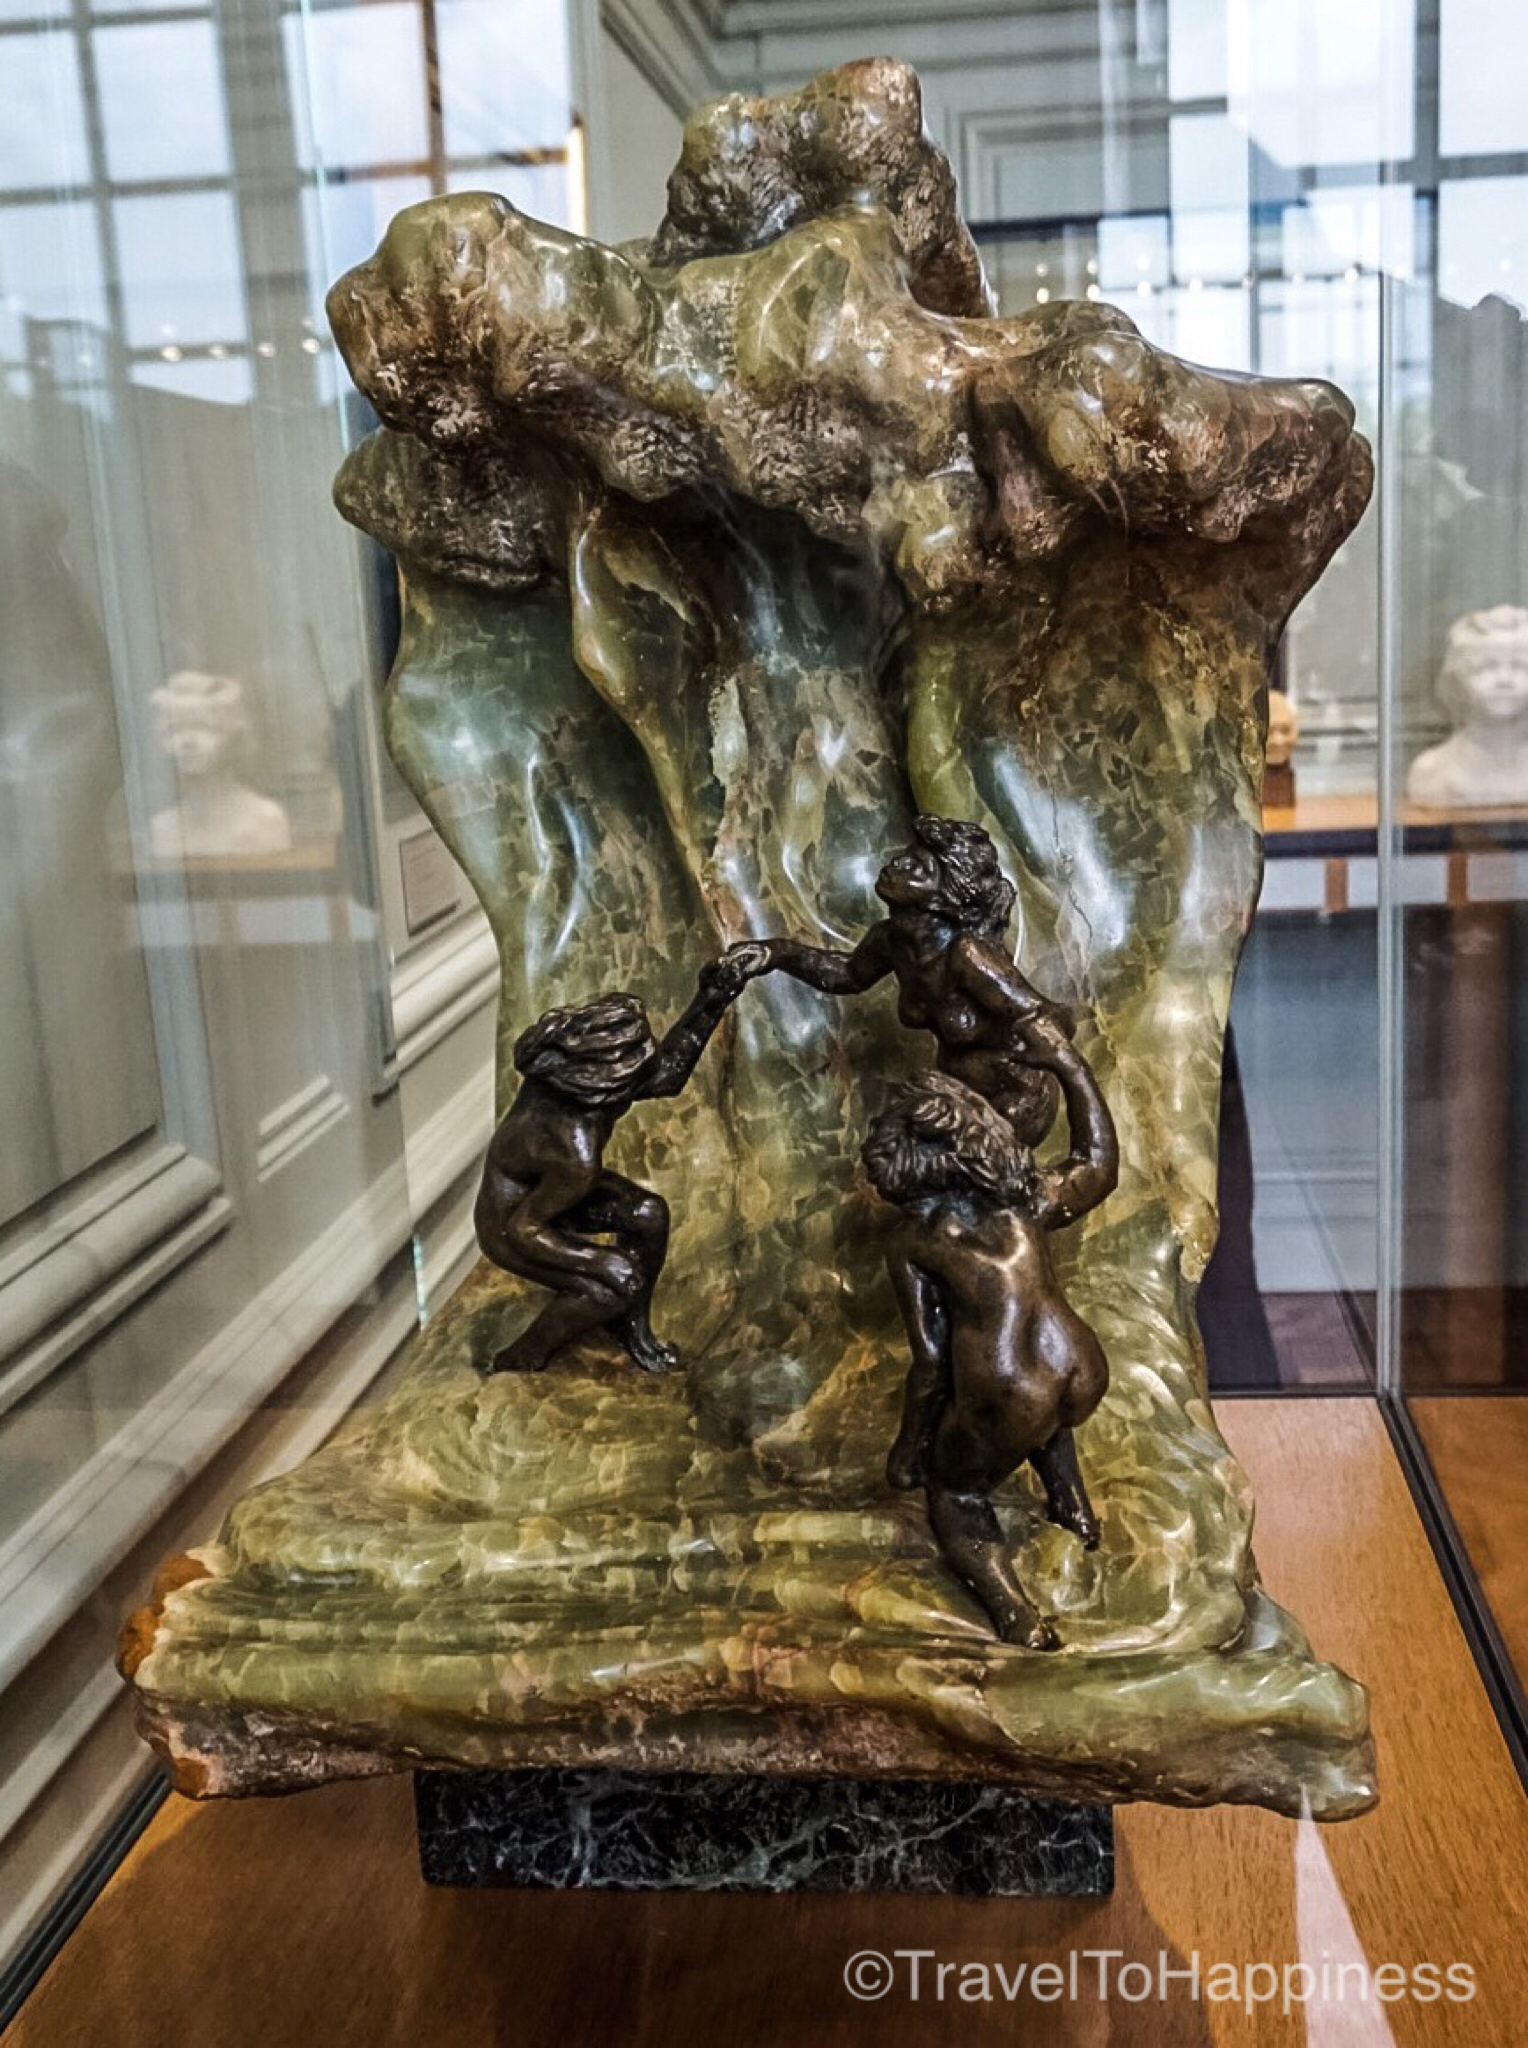 2017 RODIN CENTENARY ONE DAY AT THE RODIN MUSEUM IN PARIS